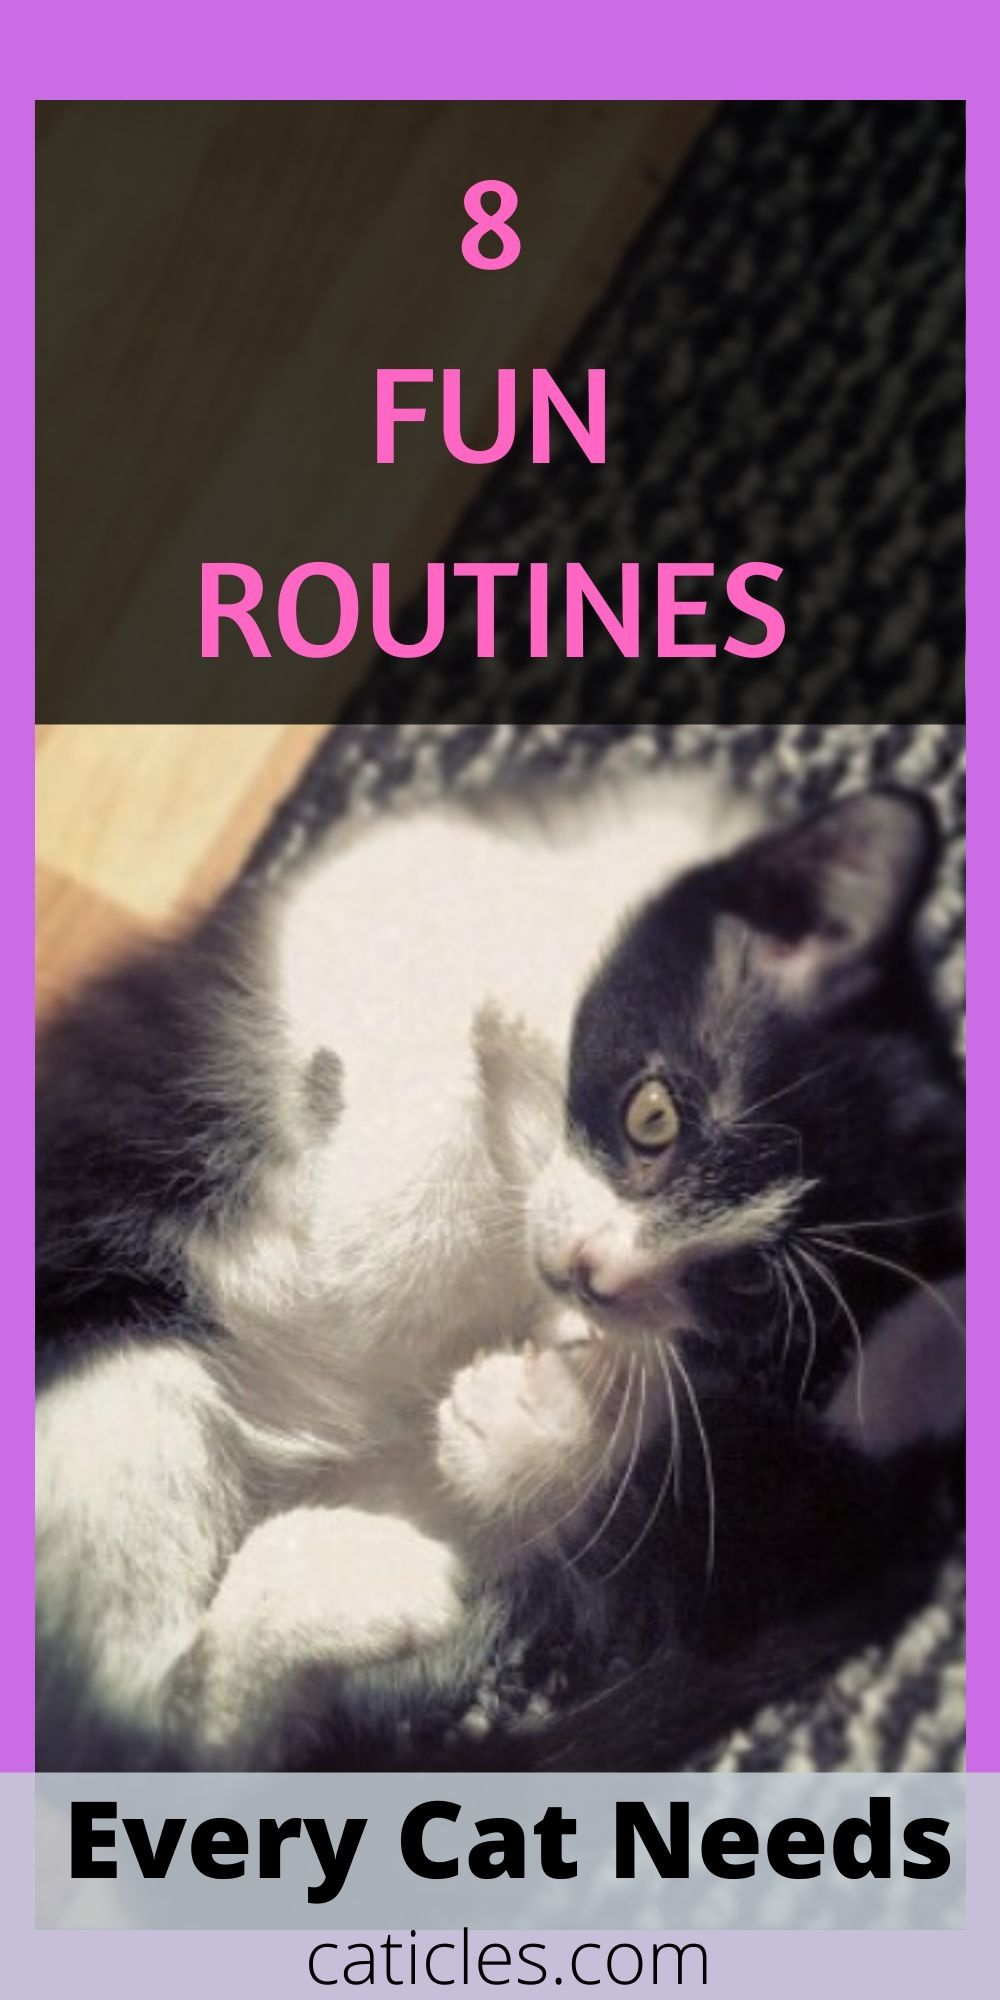 Cat Rituals That Stop Your Cat From Waking You At 3 Am Caticles In 2020 Kitten Care Raising Kittens Cats And Kittens